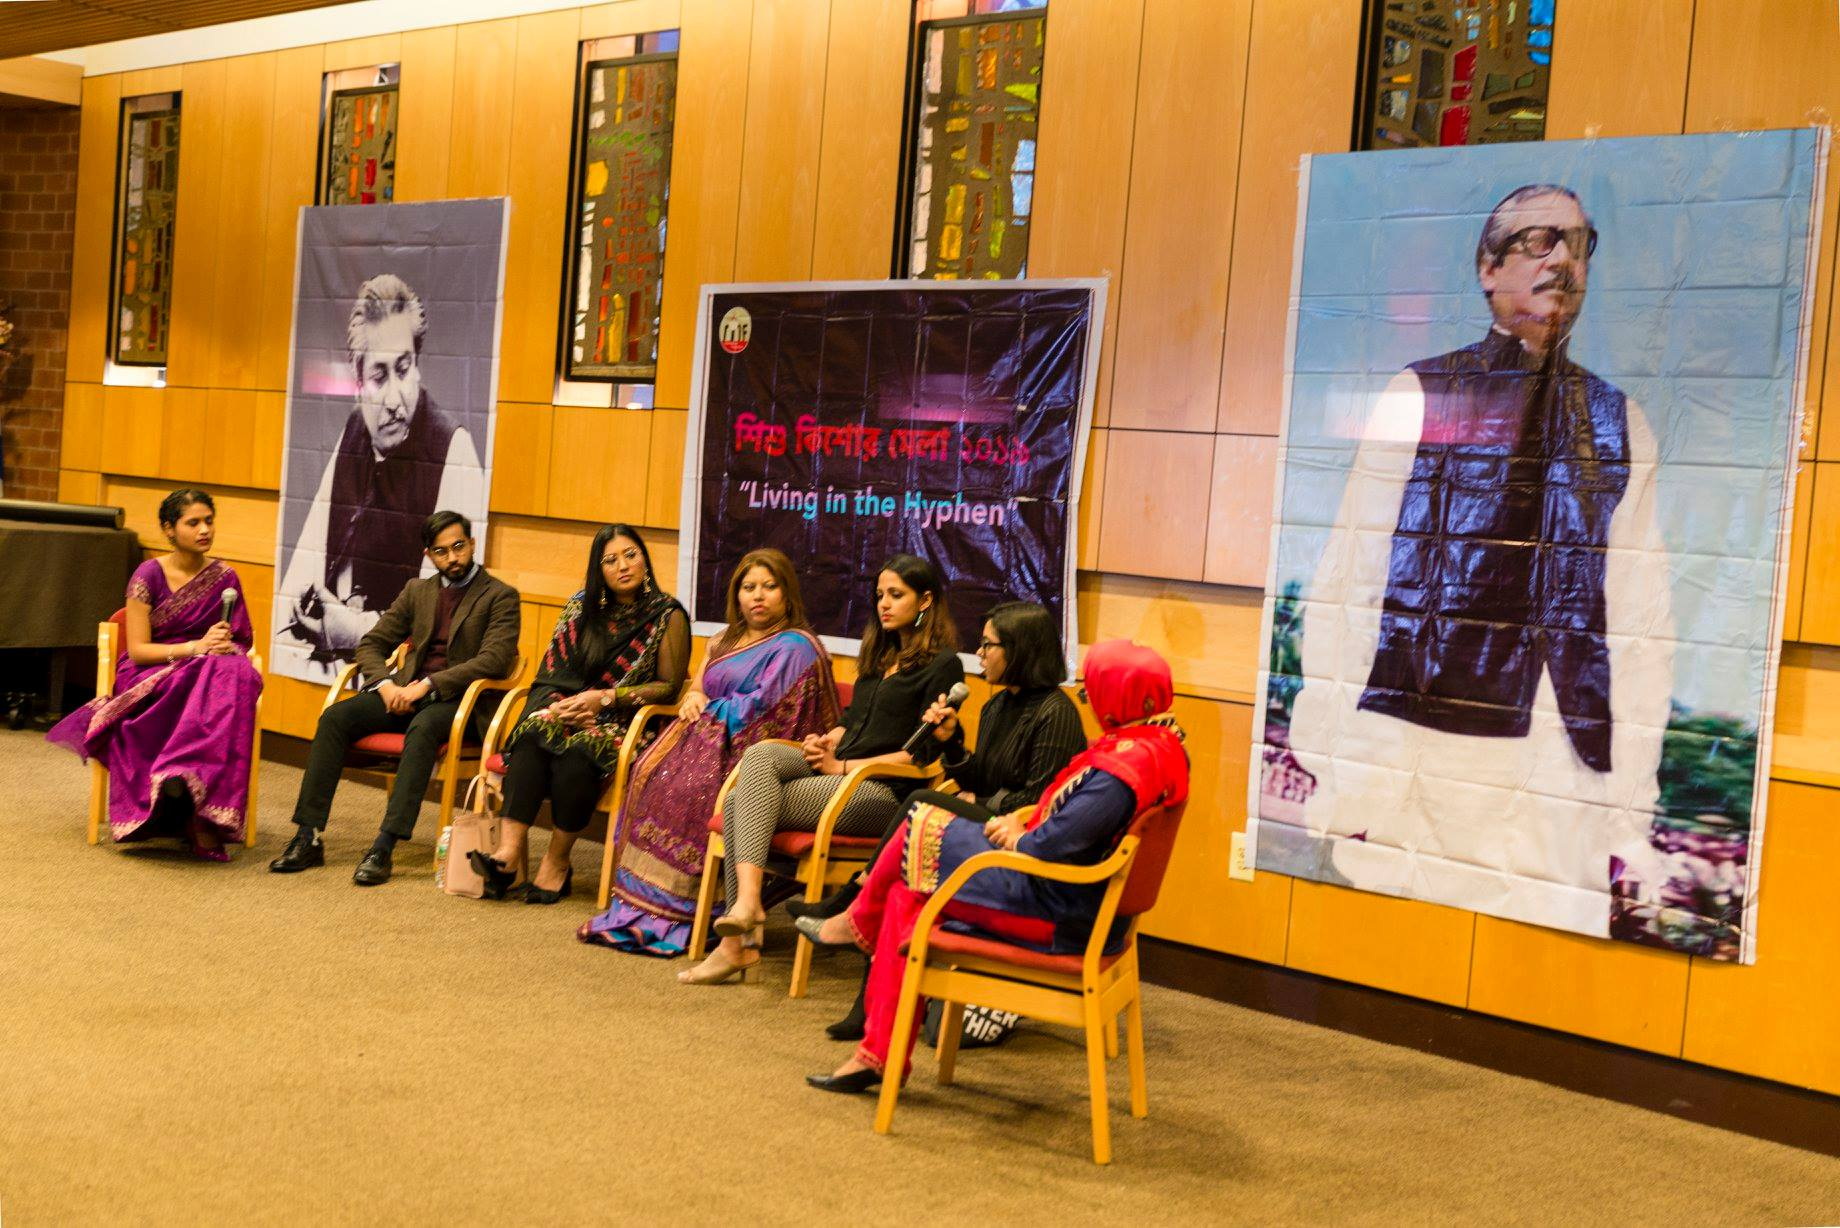 2020-ypf-panel-discussion-photo-by-wasi-ferdous-54517847